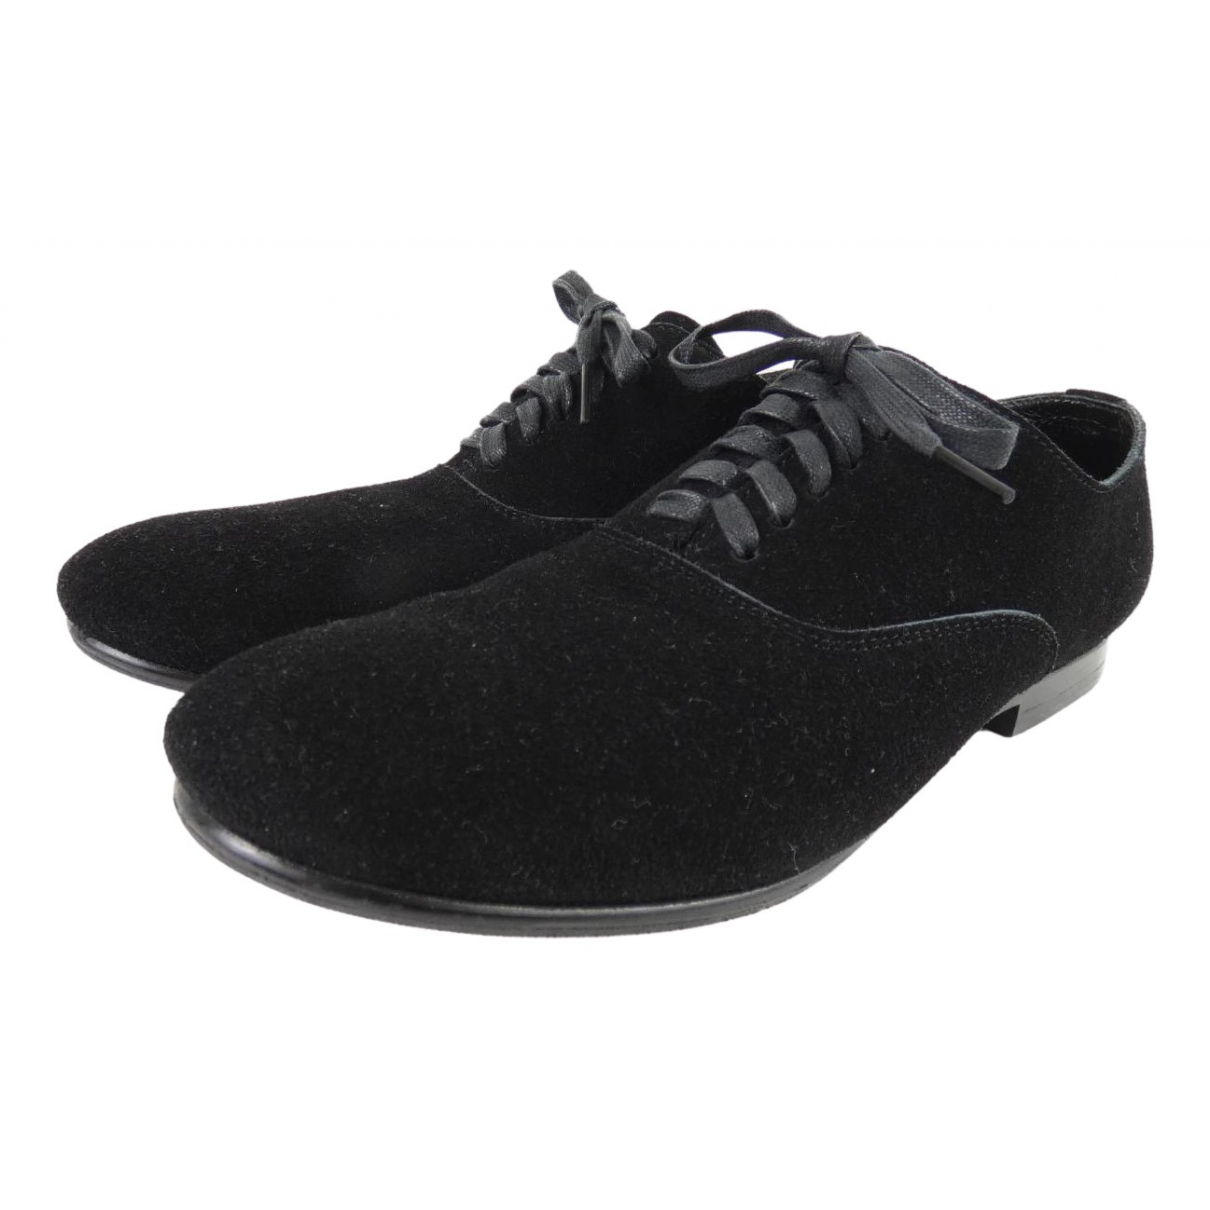 Comme Des Garcons N Black Suede Lace ups for Women 34 EU